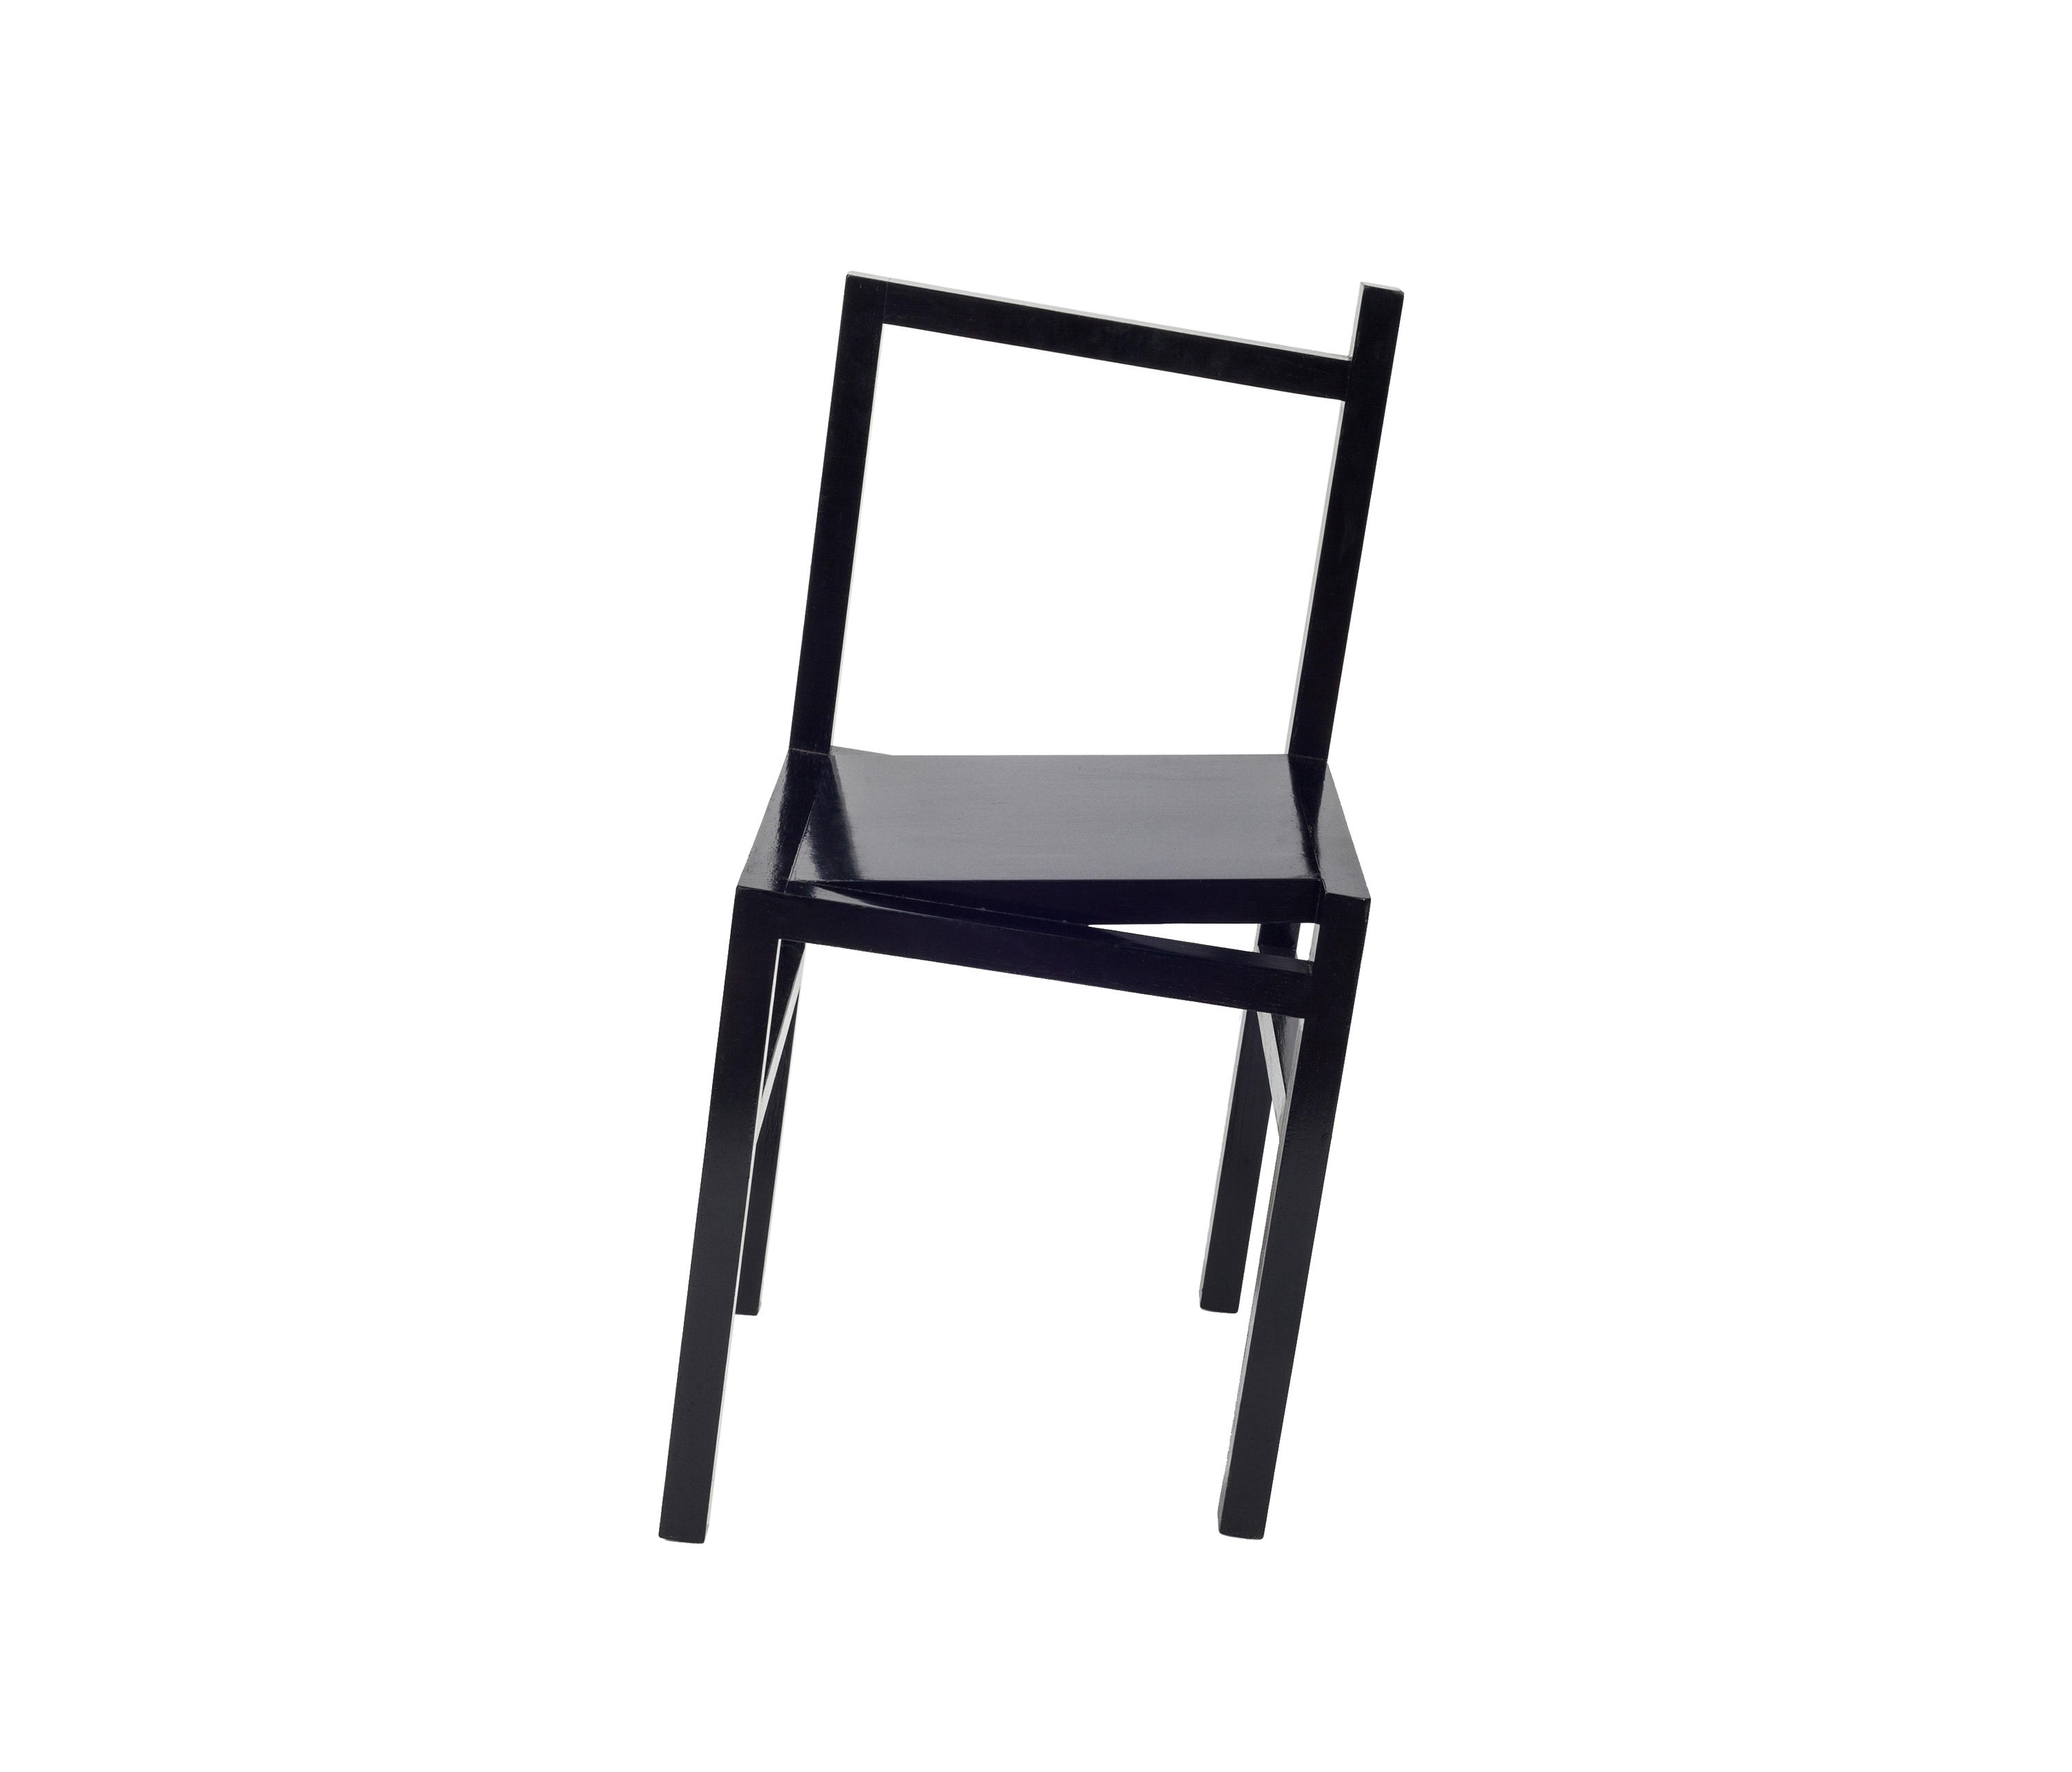 9 5° Restaurant chairs from Frama